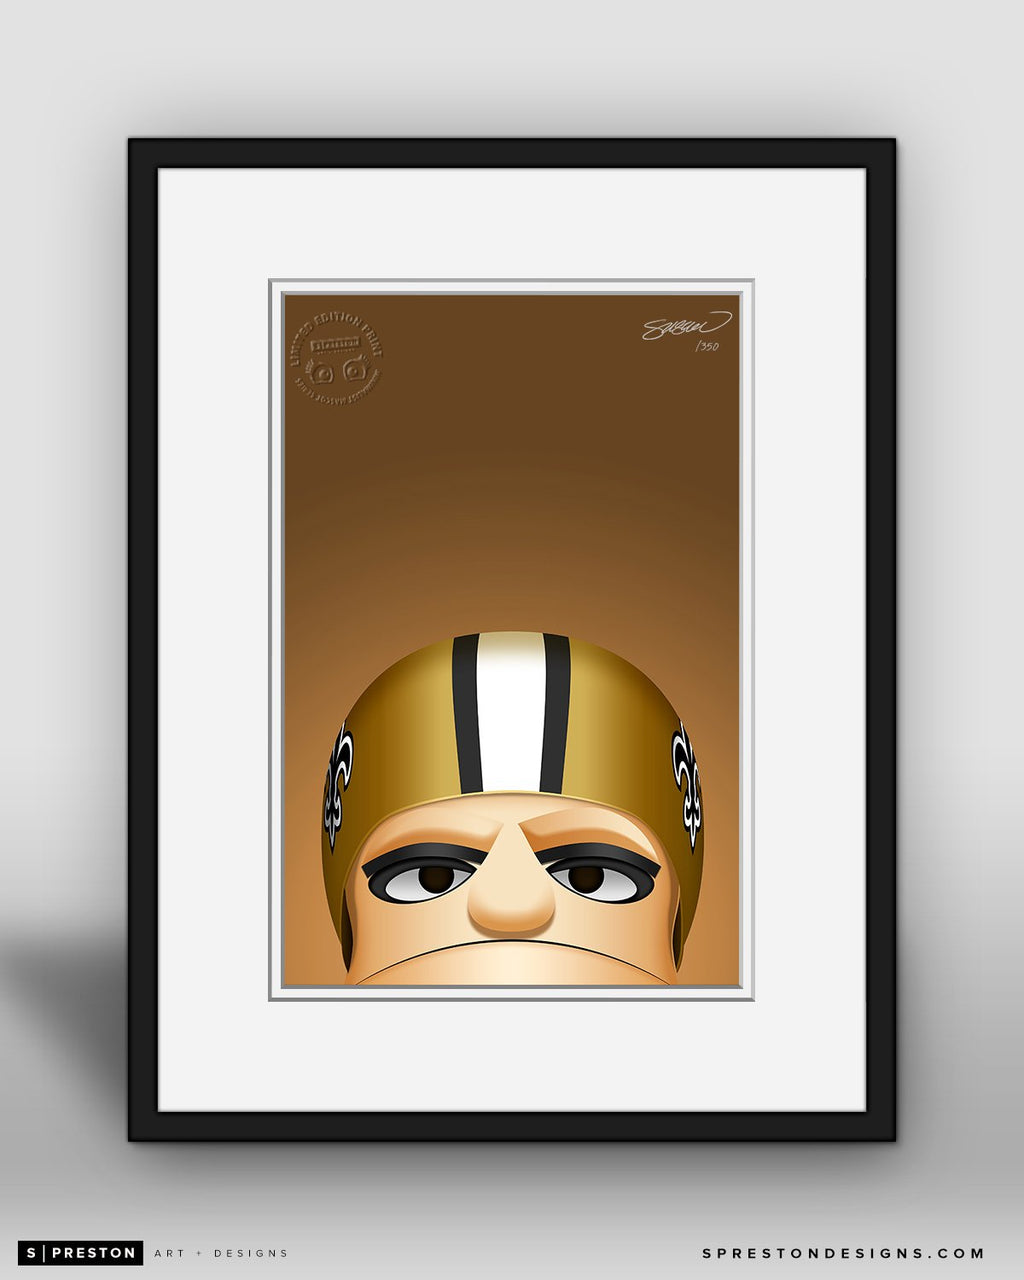 Minimalist Sir Saint - New Orleans Saints - S. Preston